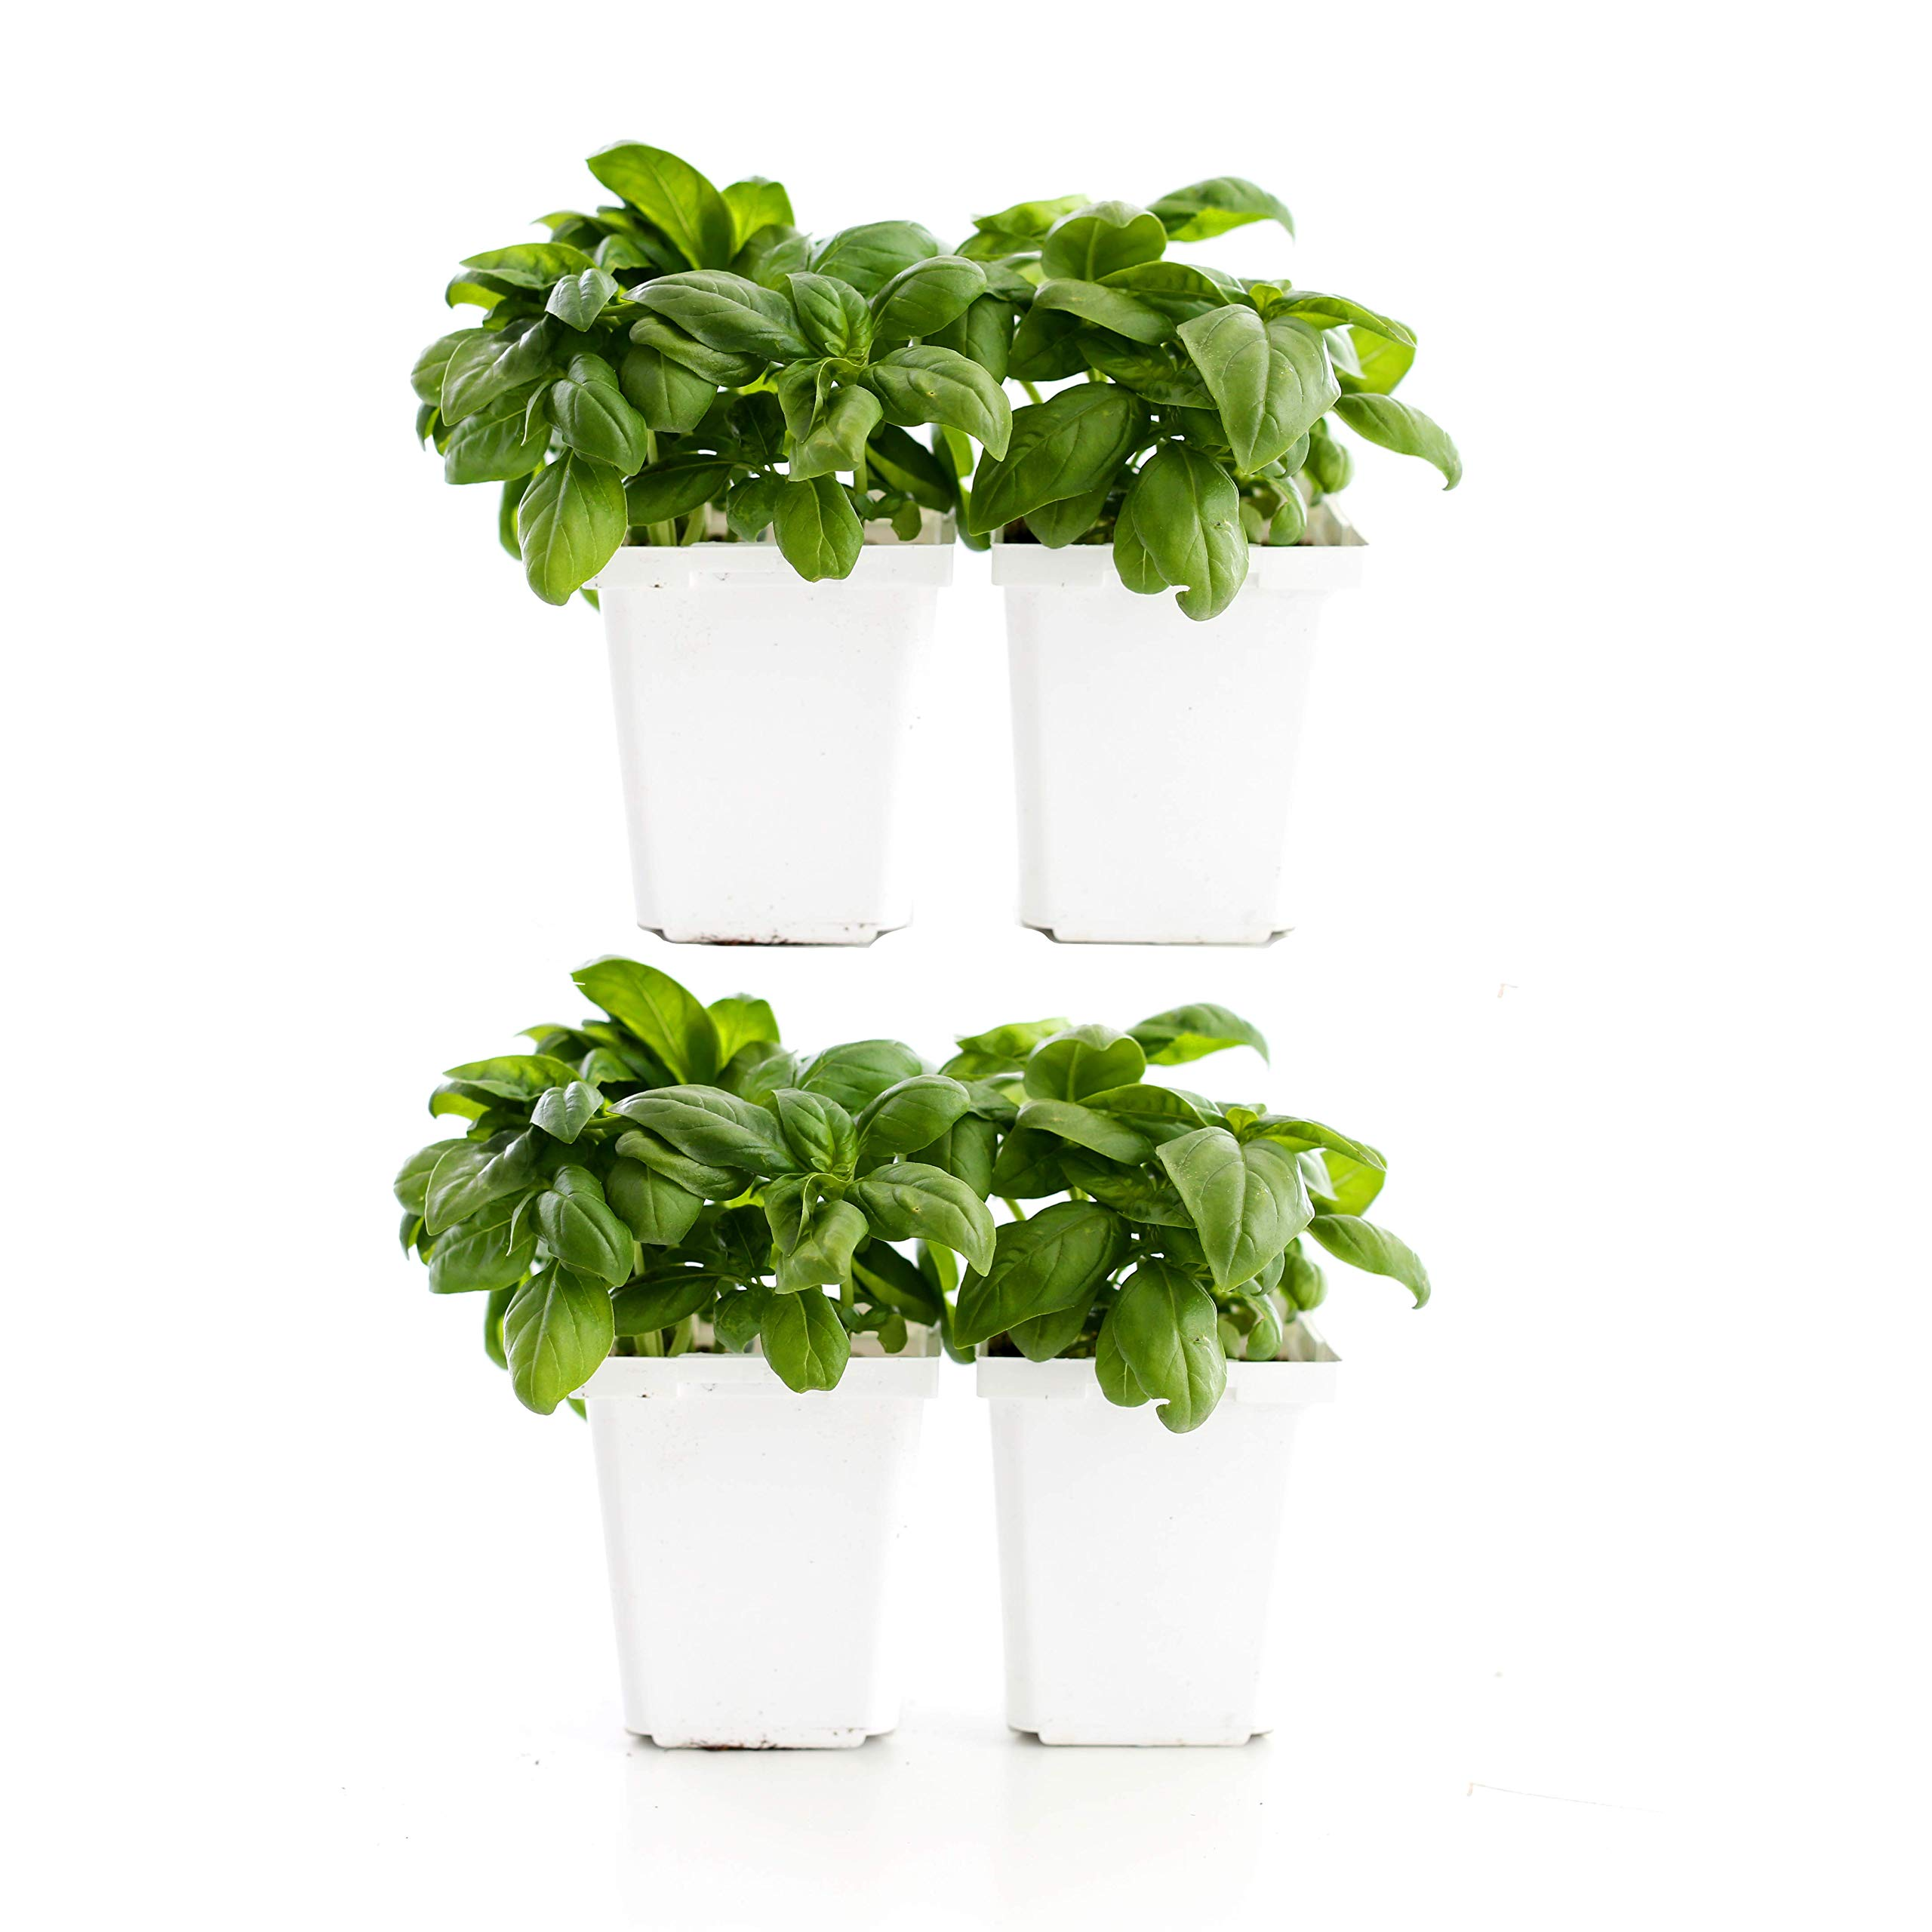 Plants by Post 4-inch Super Sweet Genovese Basil, Set of 4, Green